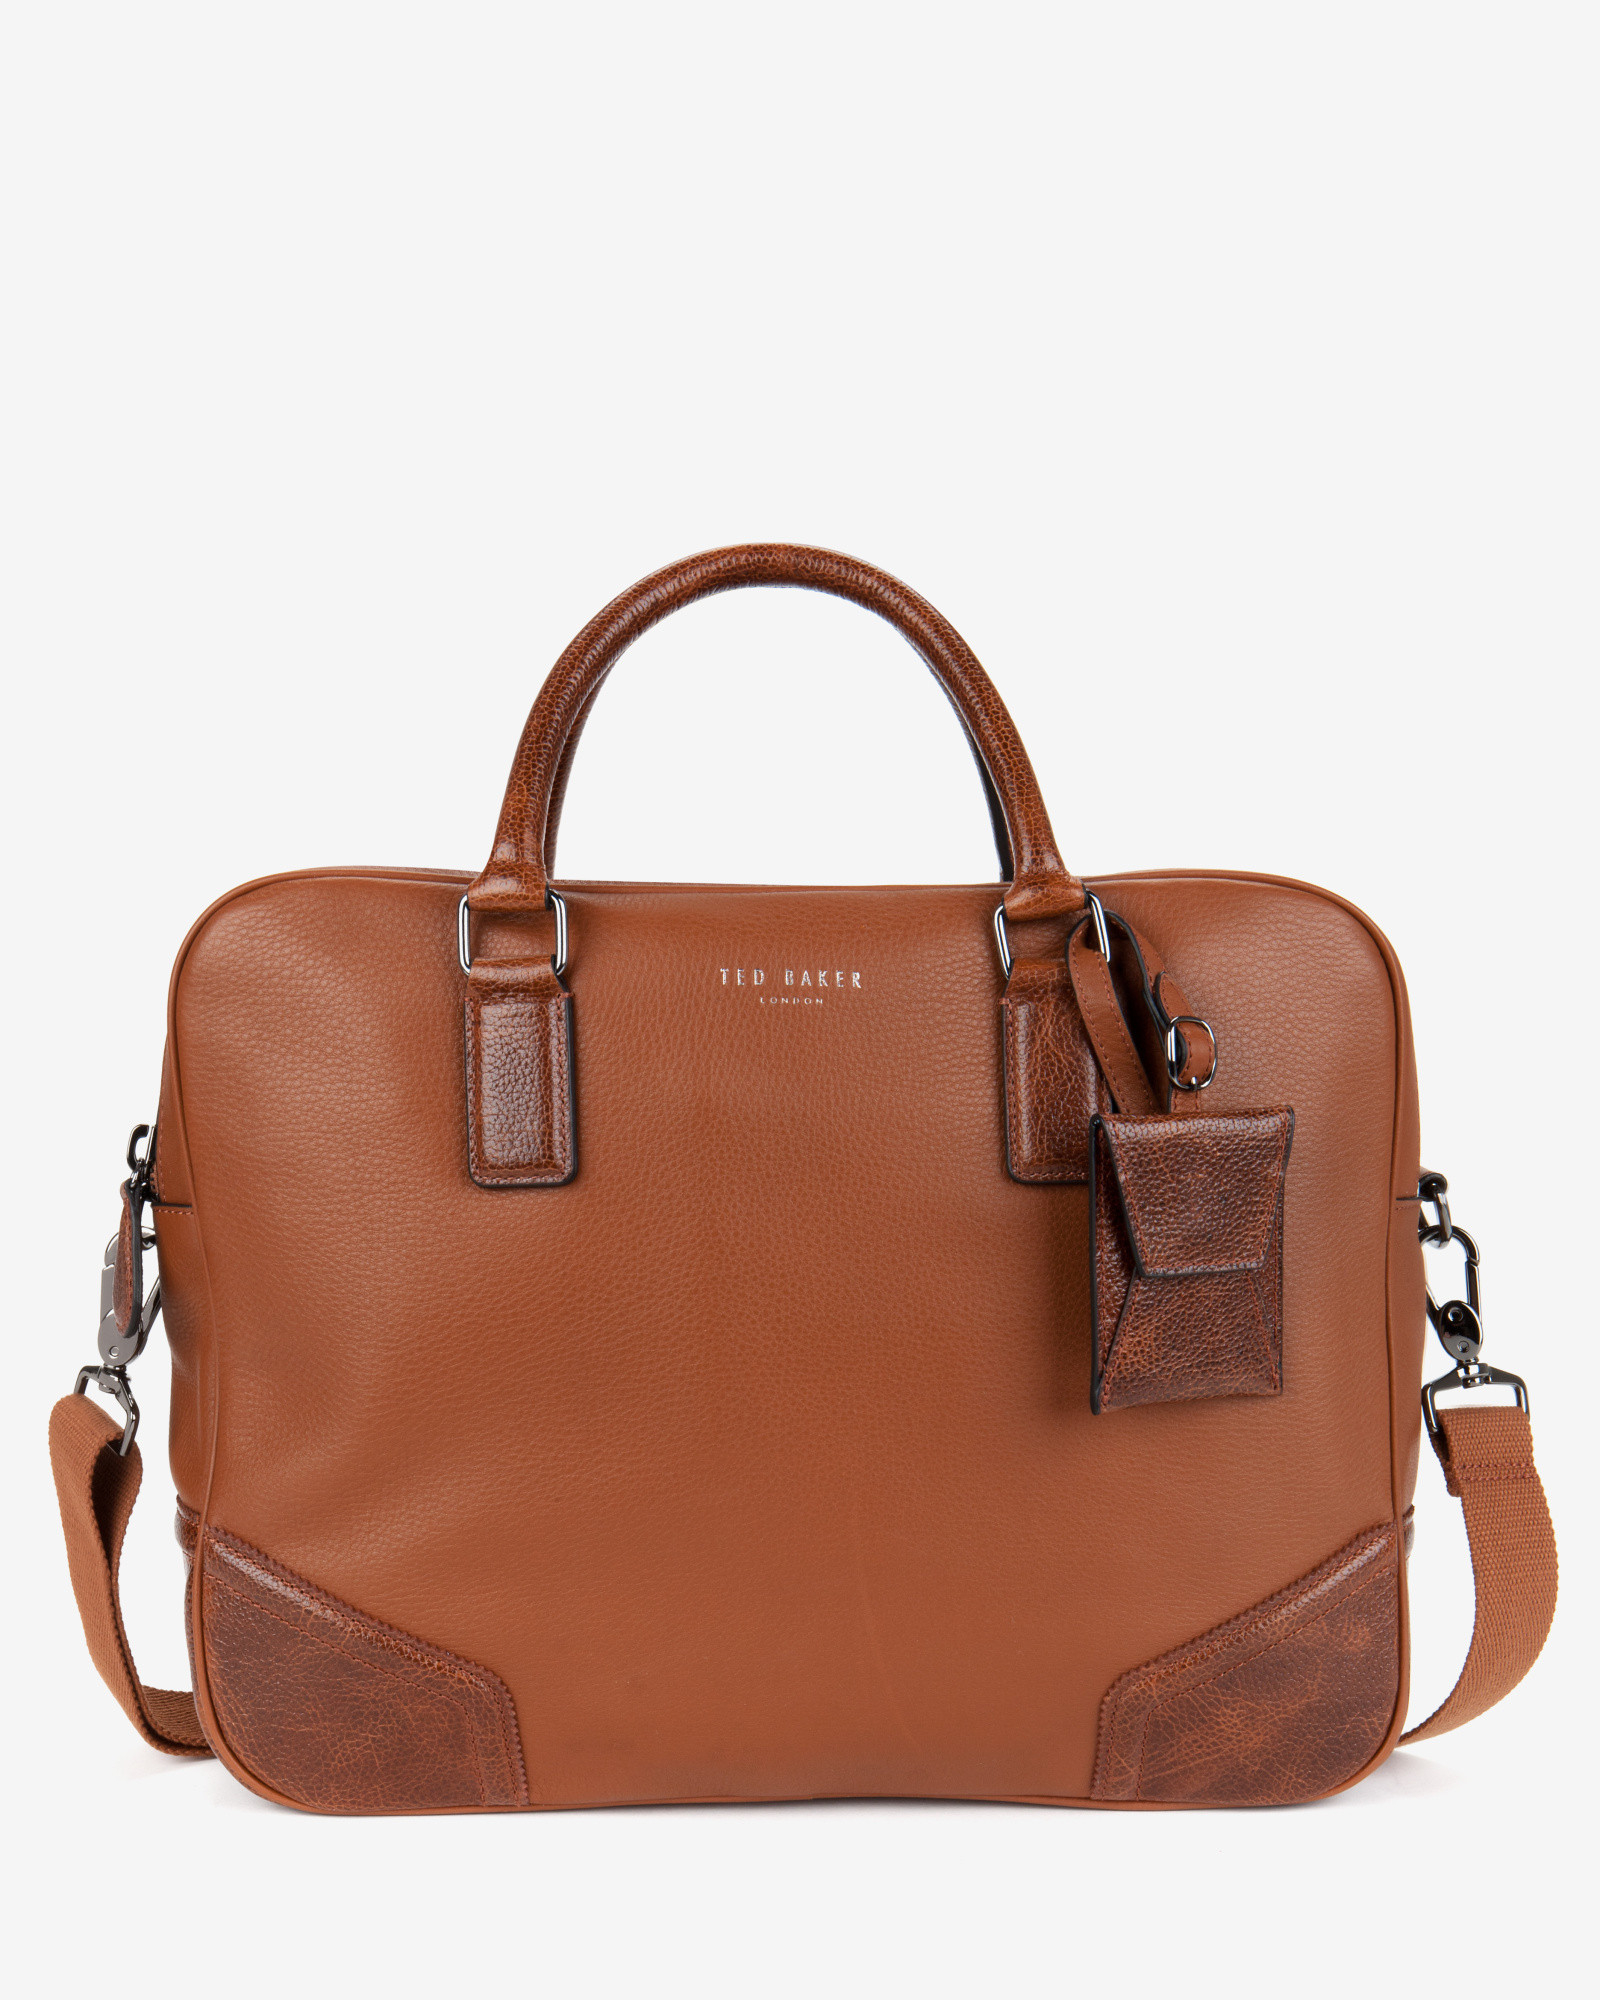 lyst ted baker leather document bag in brown for men With ted baker leather document bag